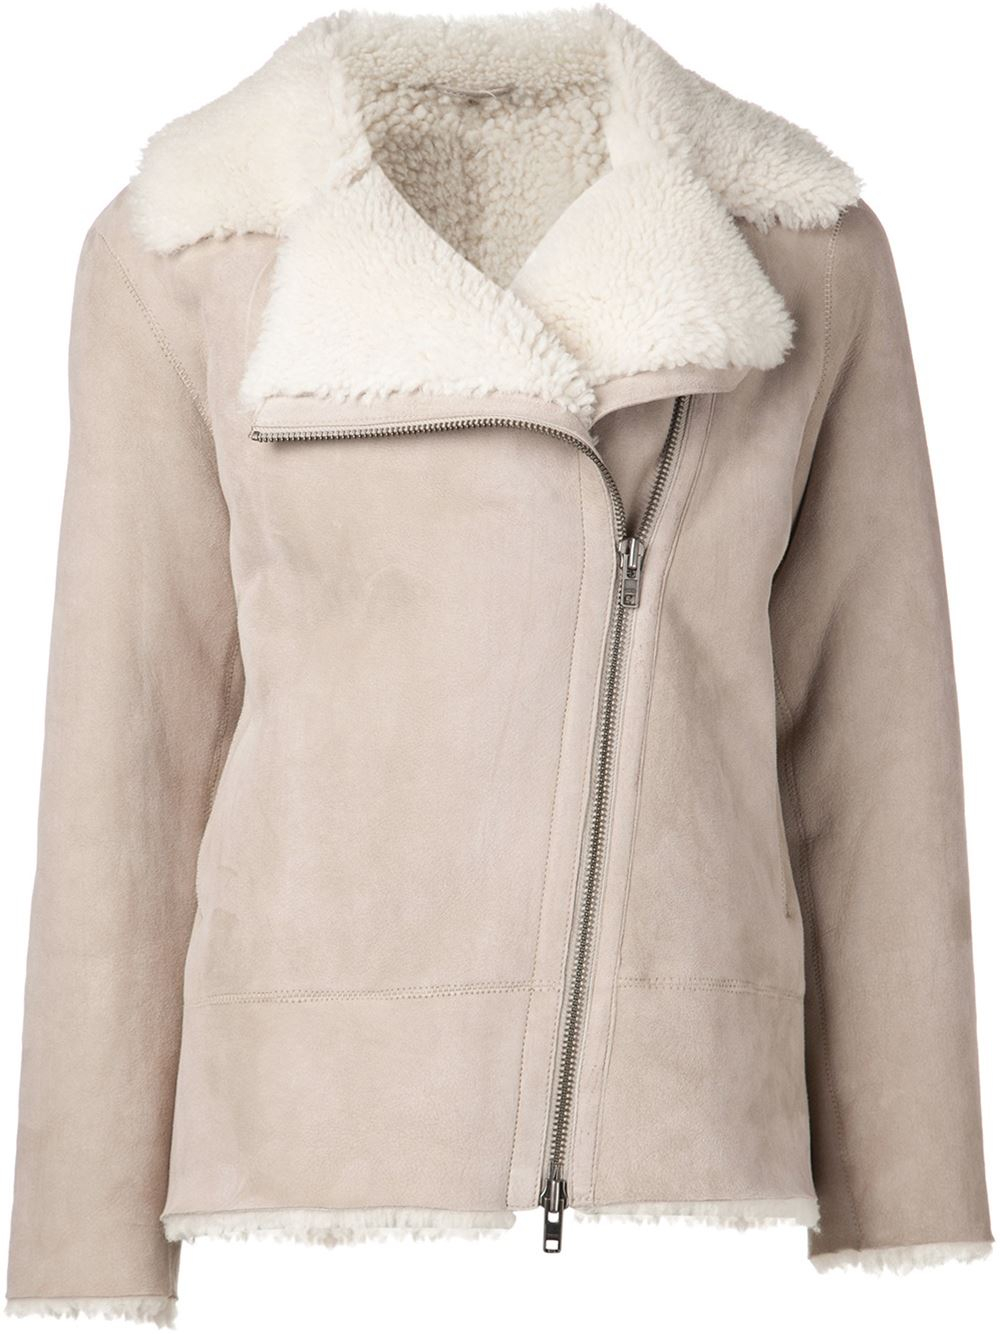 Sofie d'hoore Shearling Jacket in Natural | Lyst